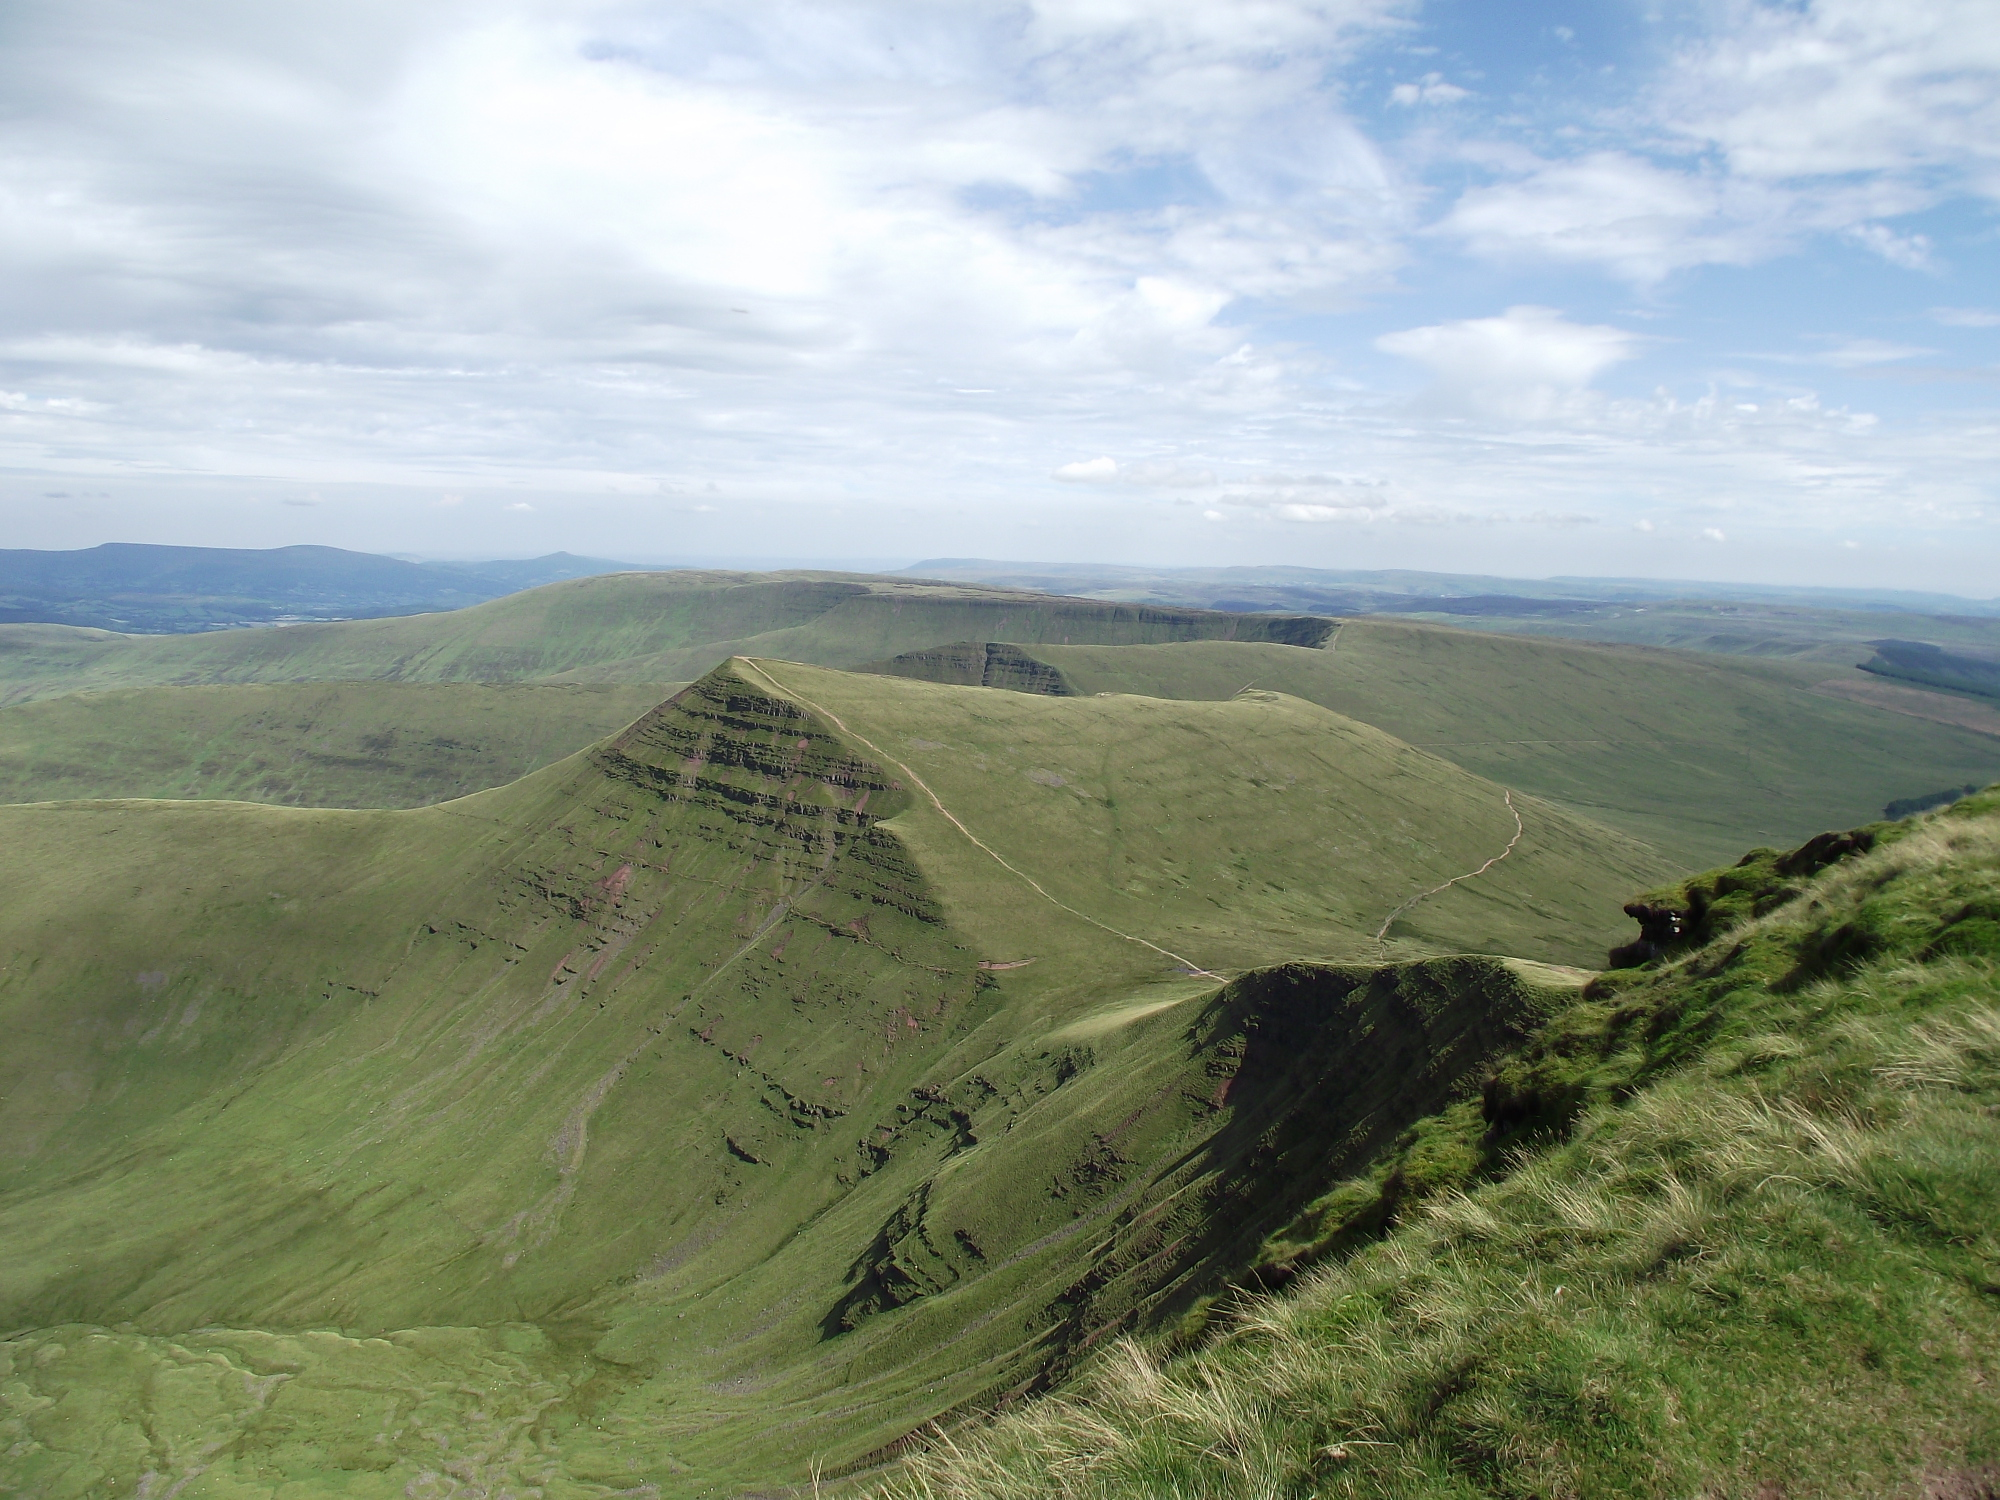 brecon single guys Families of three men who families dismayed at junior officers' charges edward maher and james dunsby died after training exercise at pen y fan in the brecon.